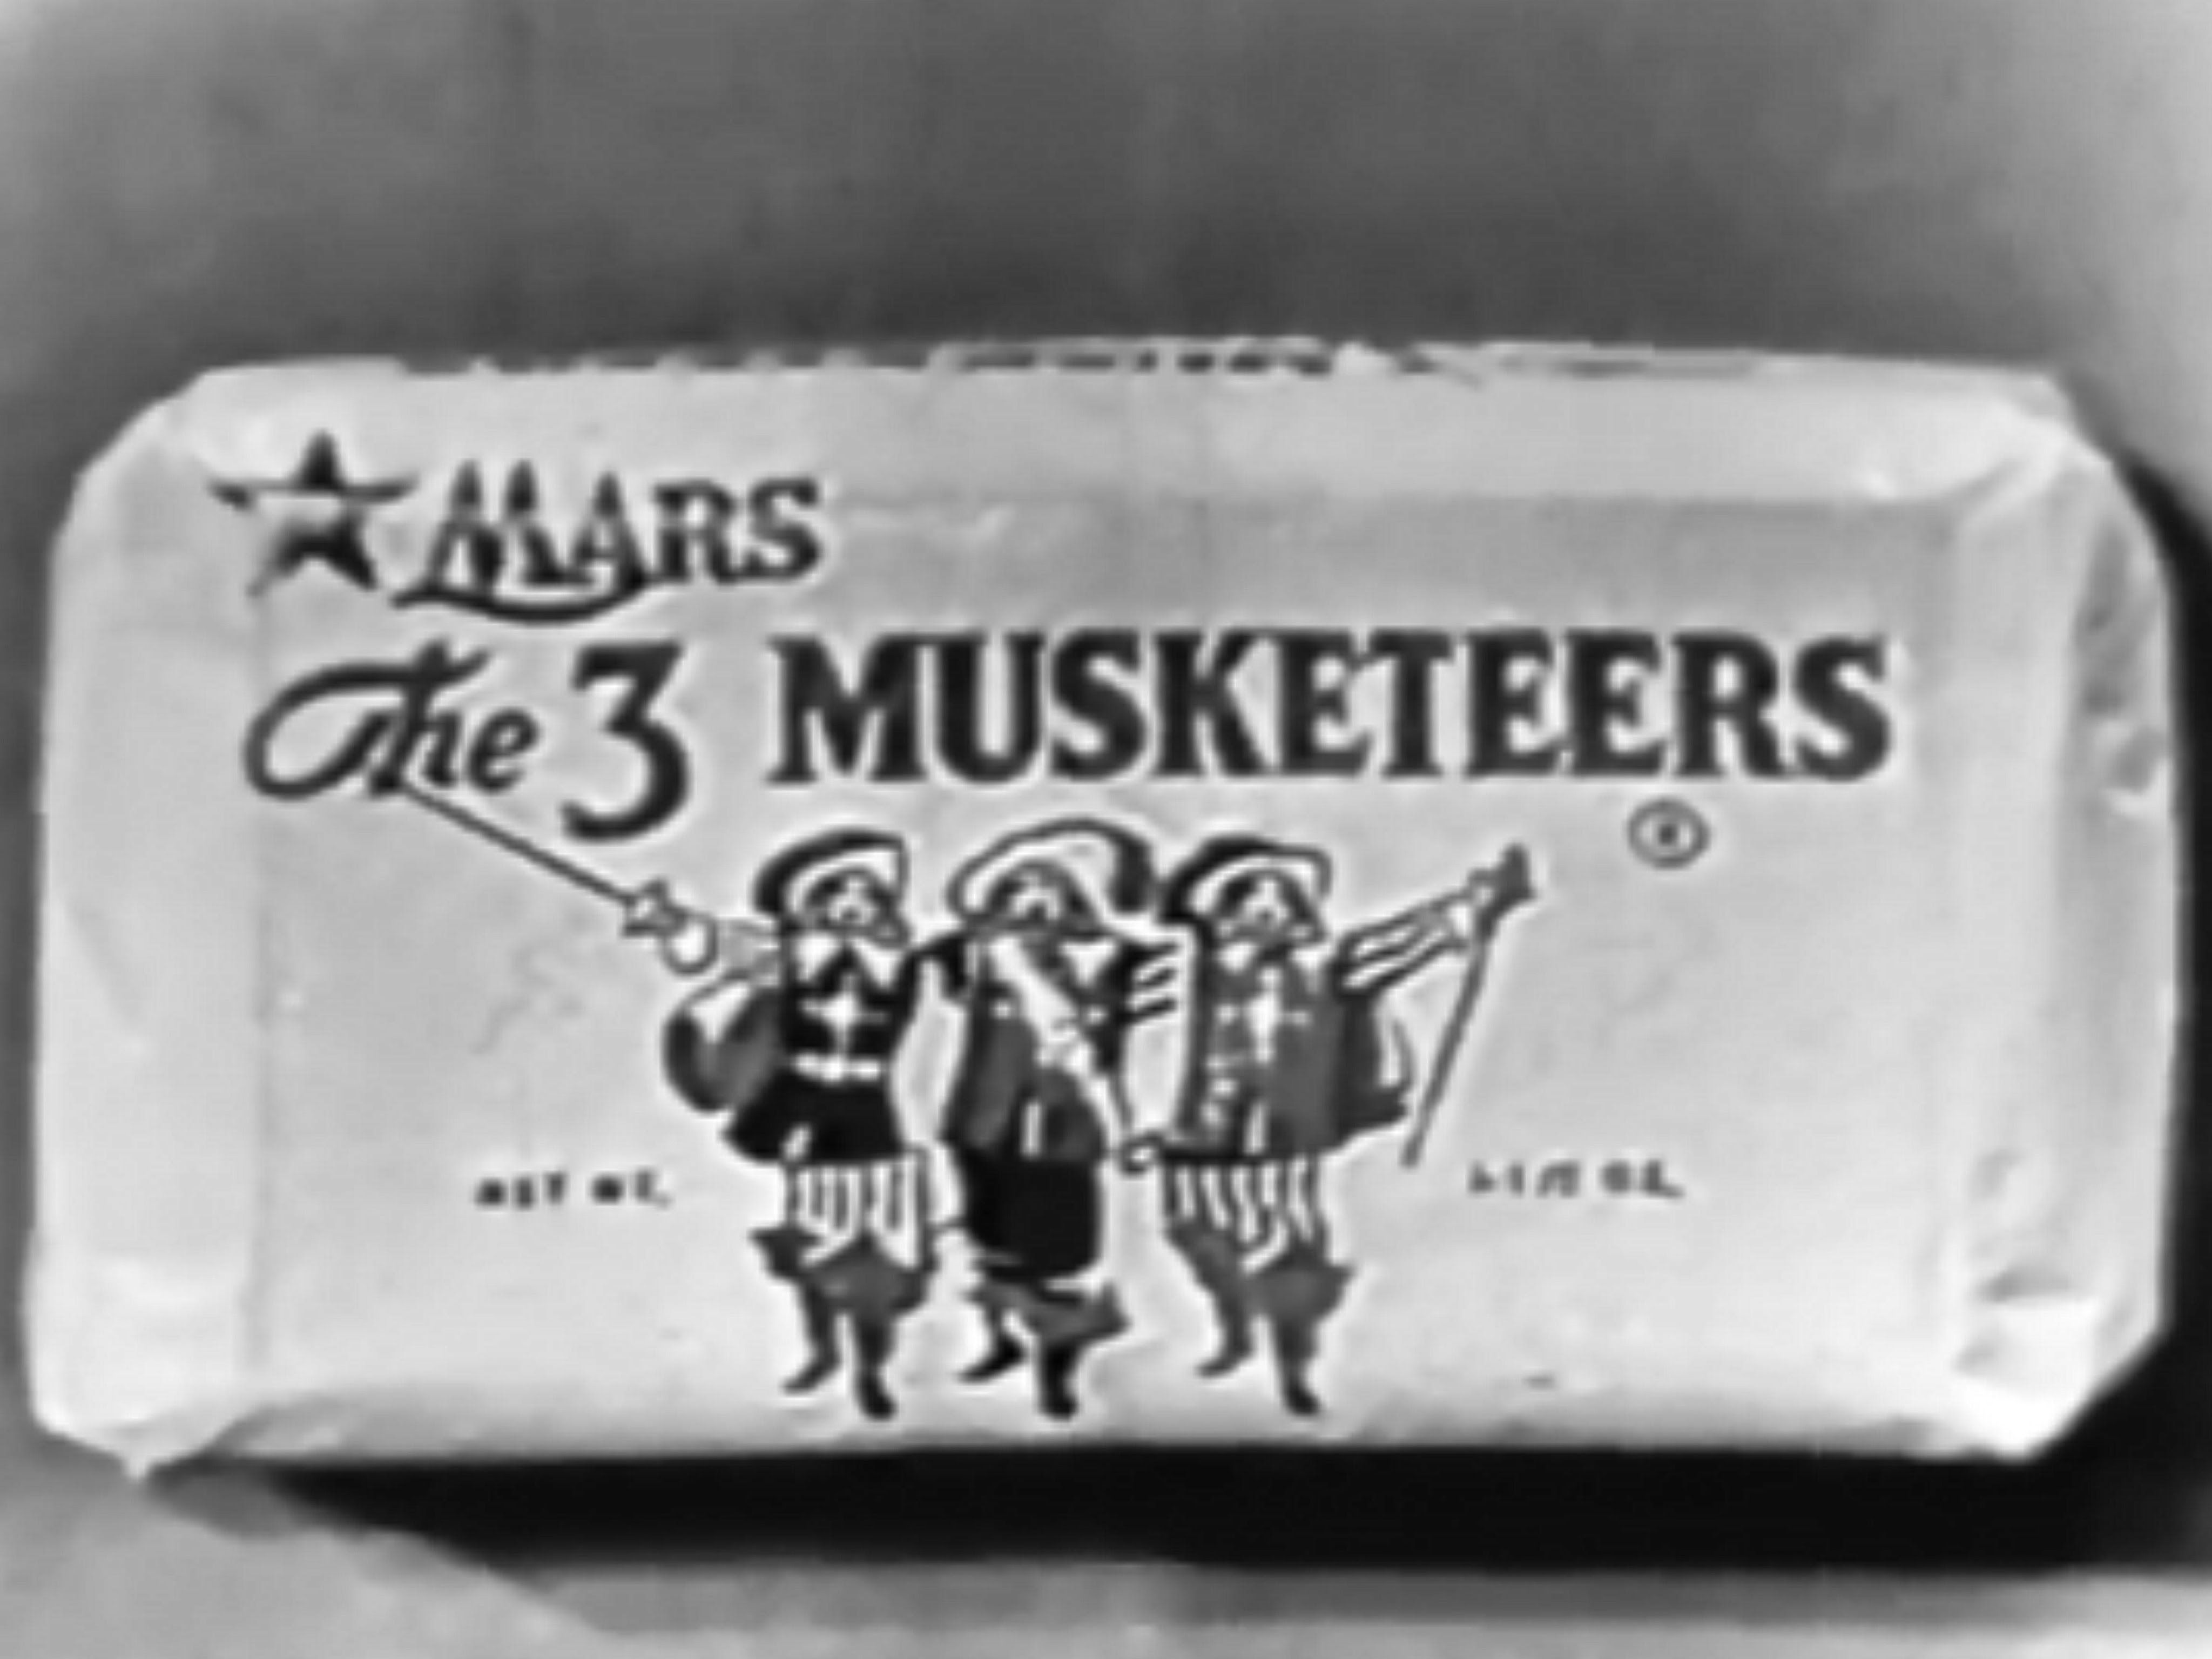 3 musketeers candy bar vintage tv commercial hd youtube shelved this is an old video for the 3 musketeers candy bar commercial made by mars candy company buycottarizona Gallery